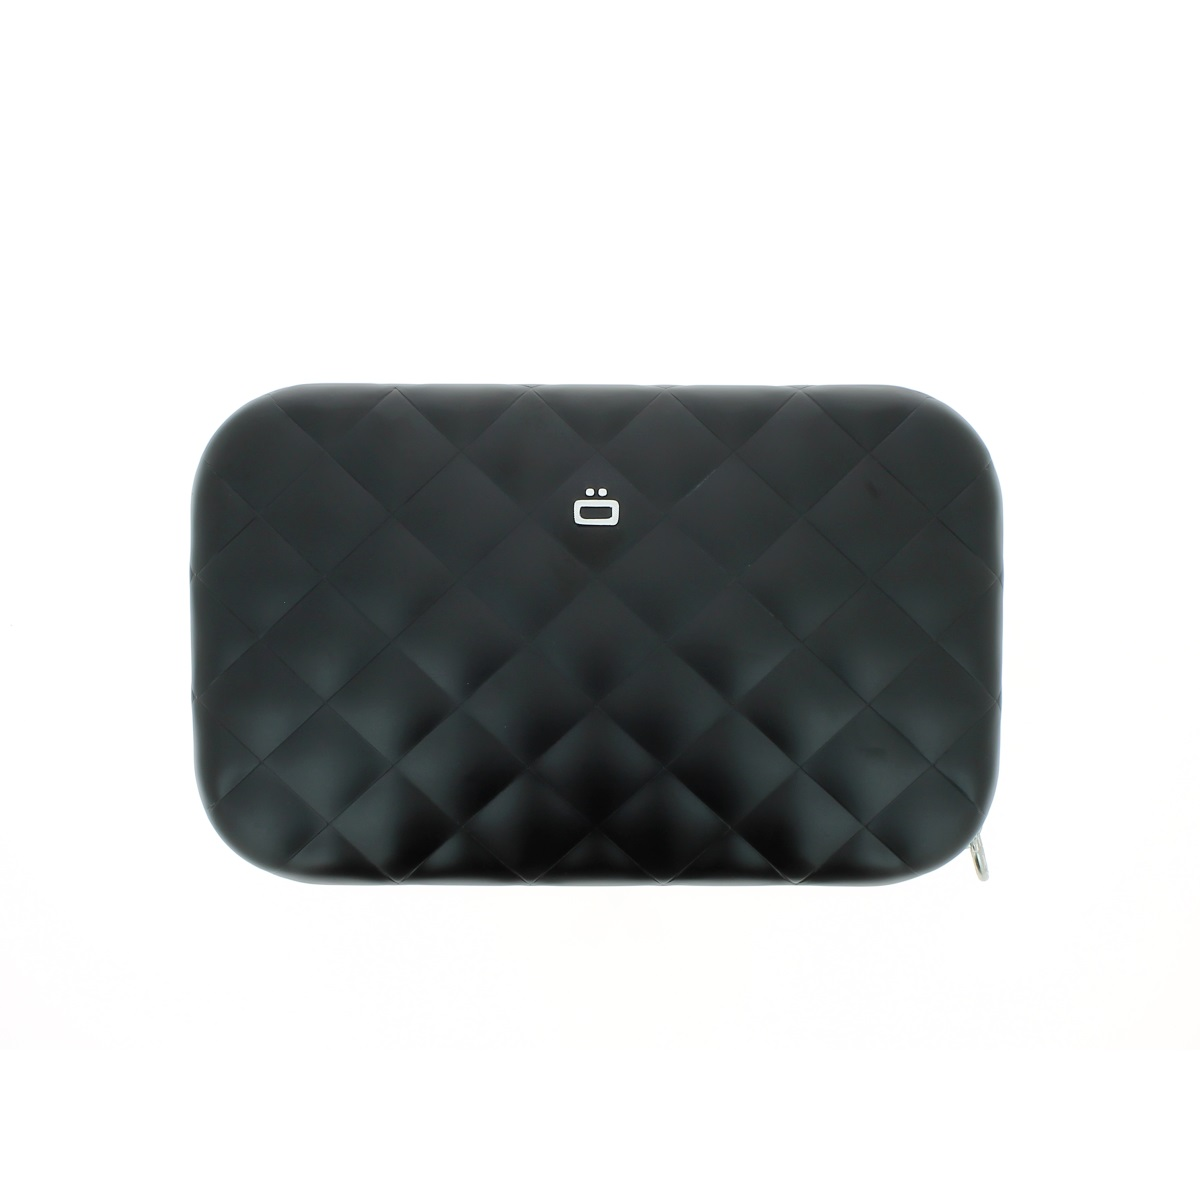 OGON Aluminum Clutch Quilted Lady Bag - Black